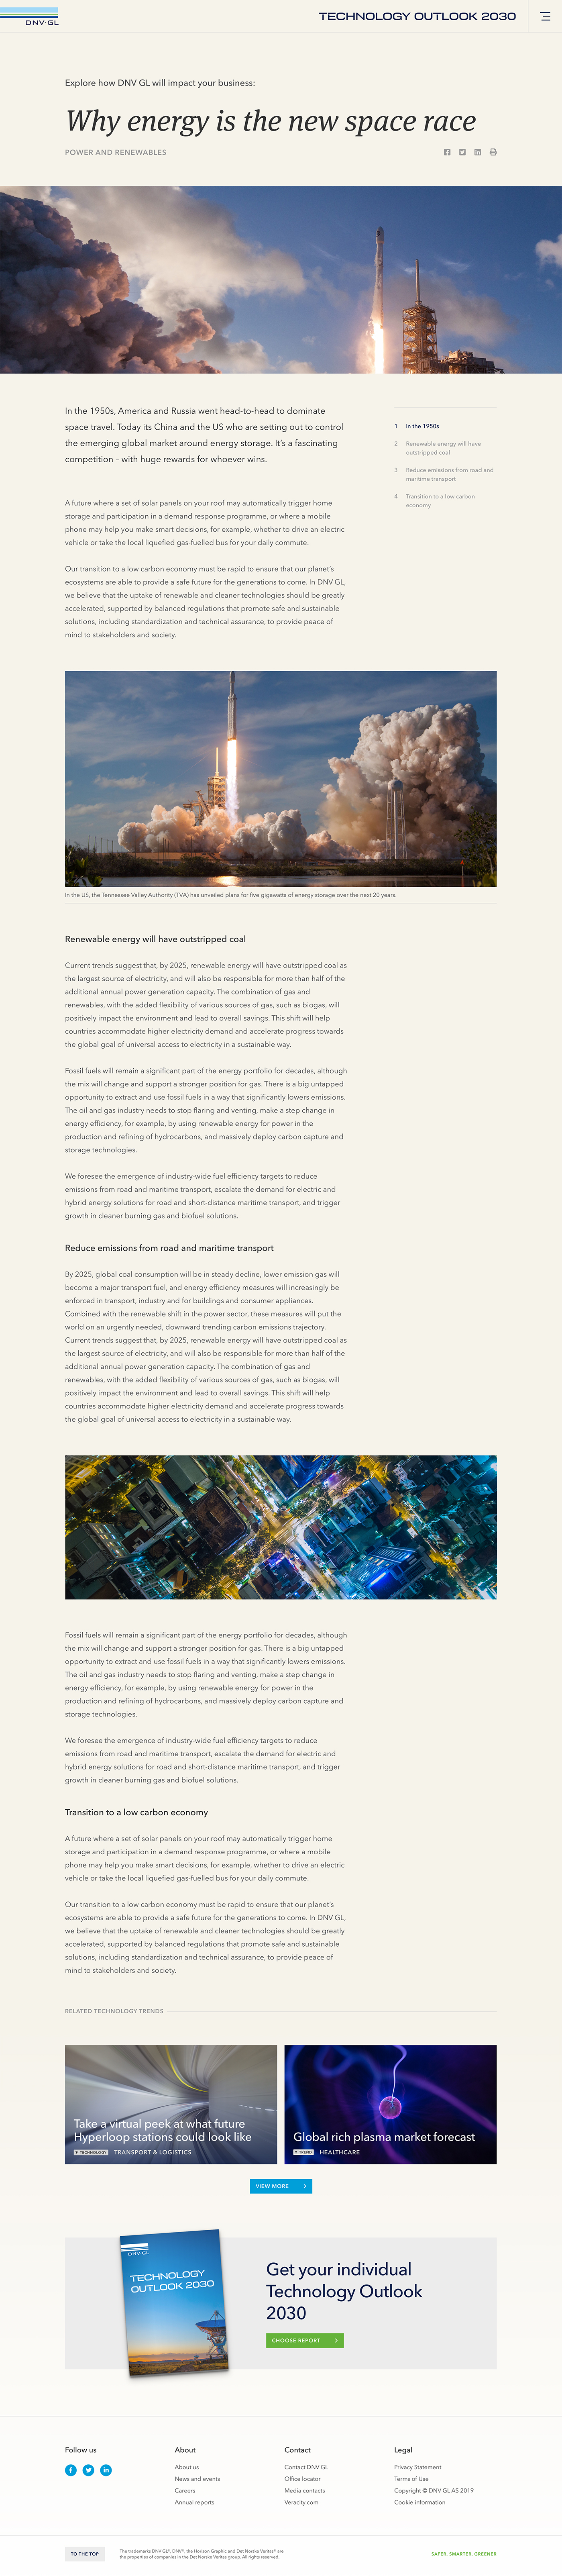 dnv-gl_technology-outlook_article-pages-2